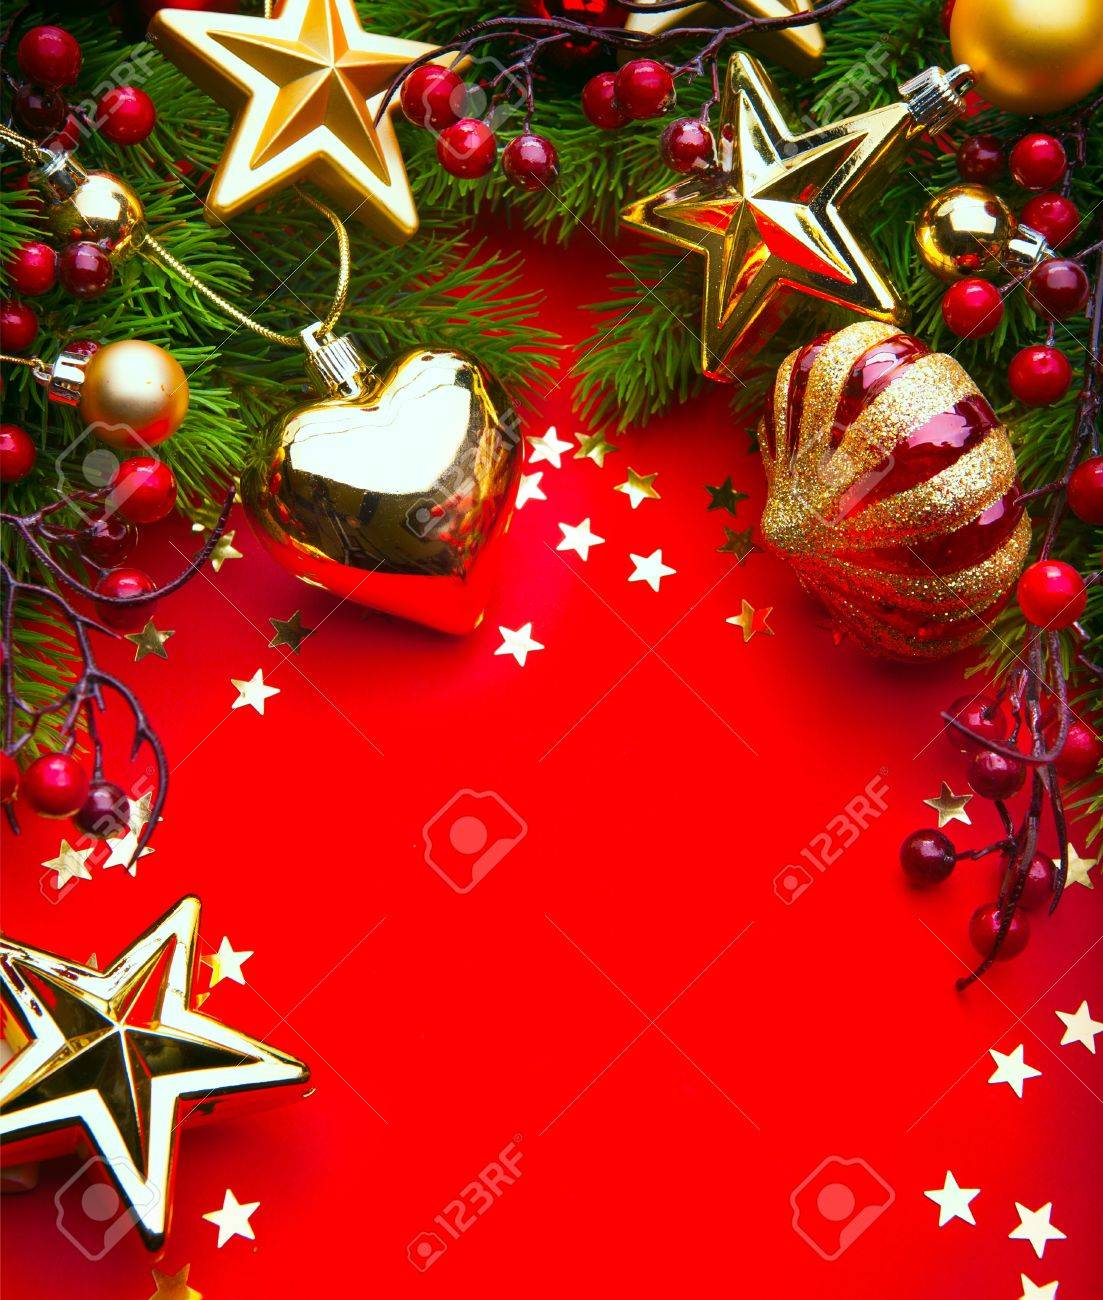 Design A Christmas Greeting Card With Christmas Decorations On